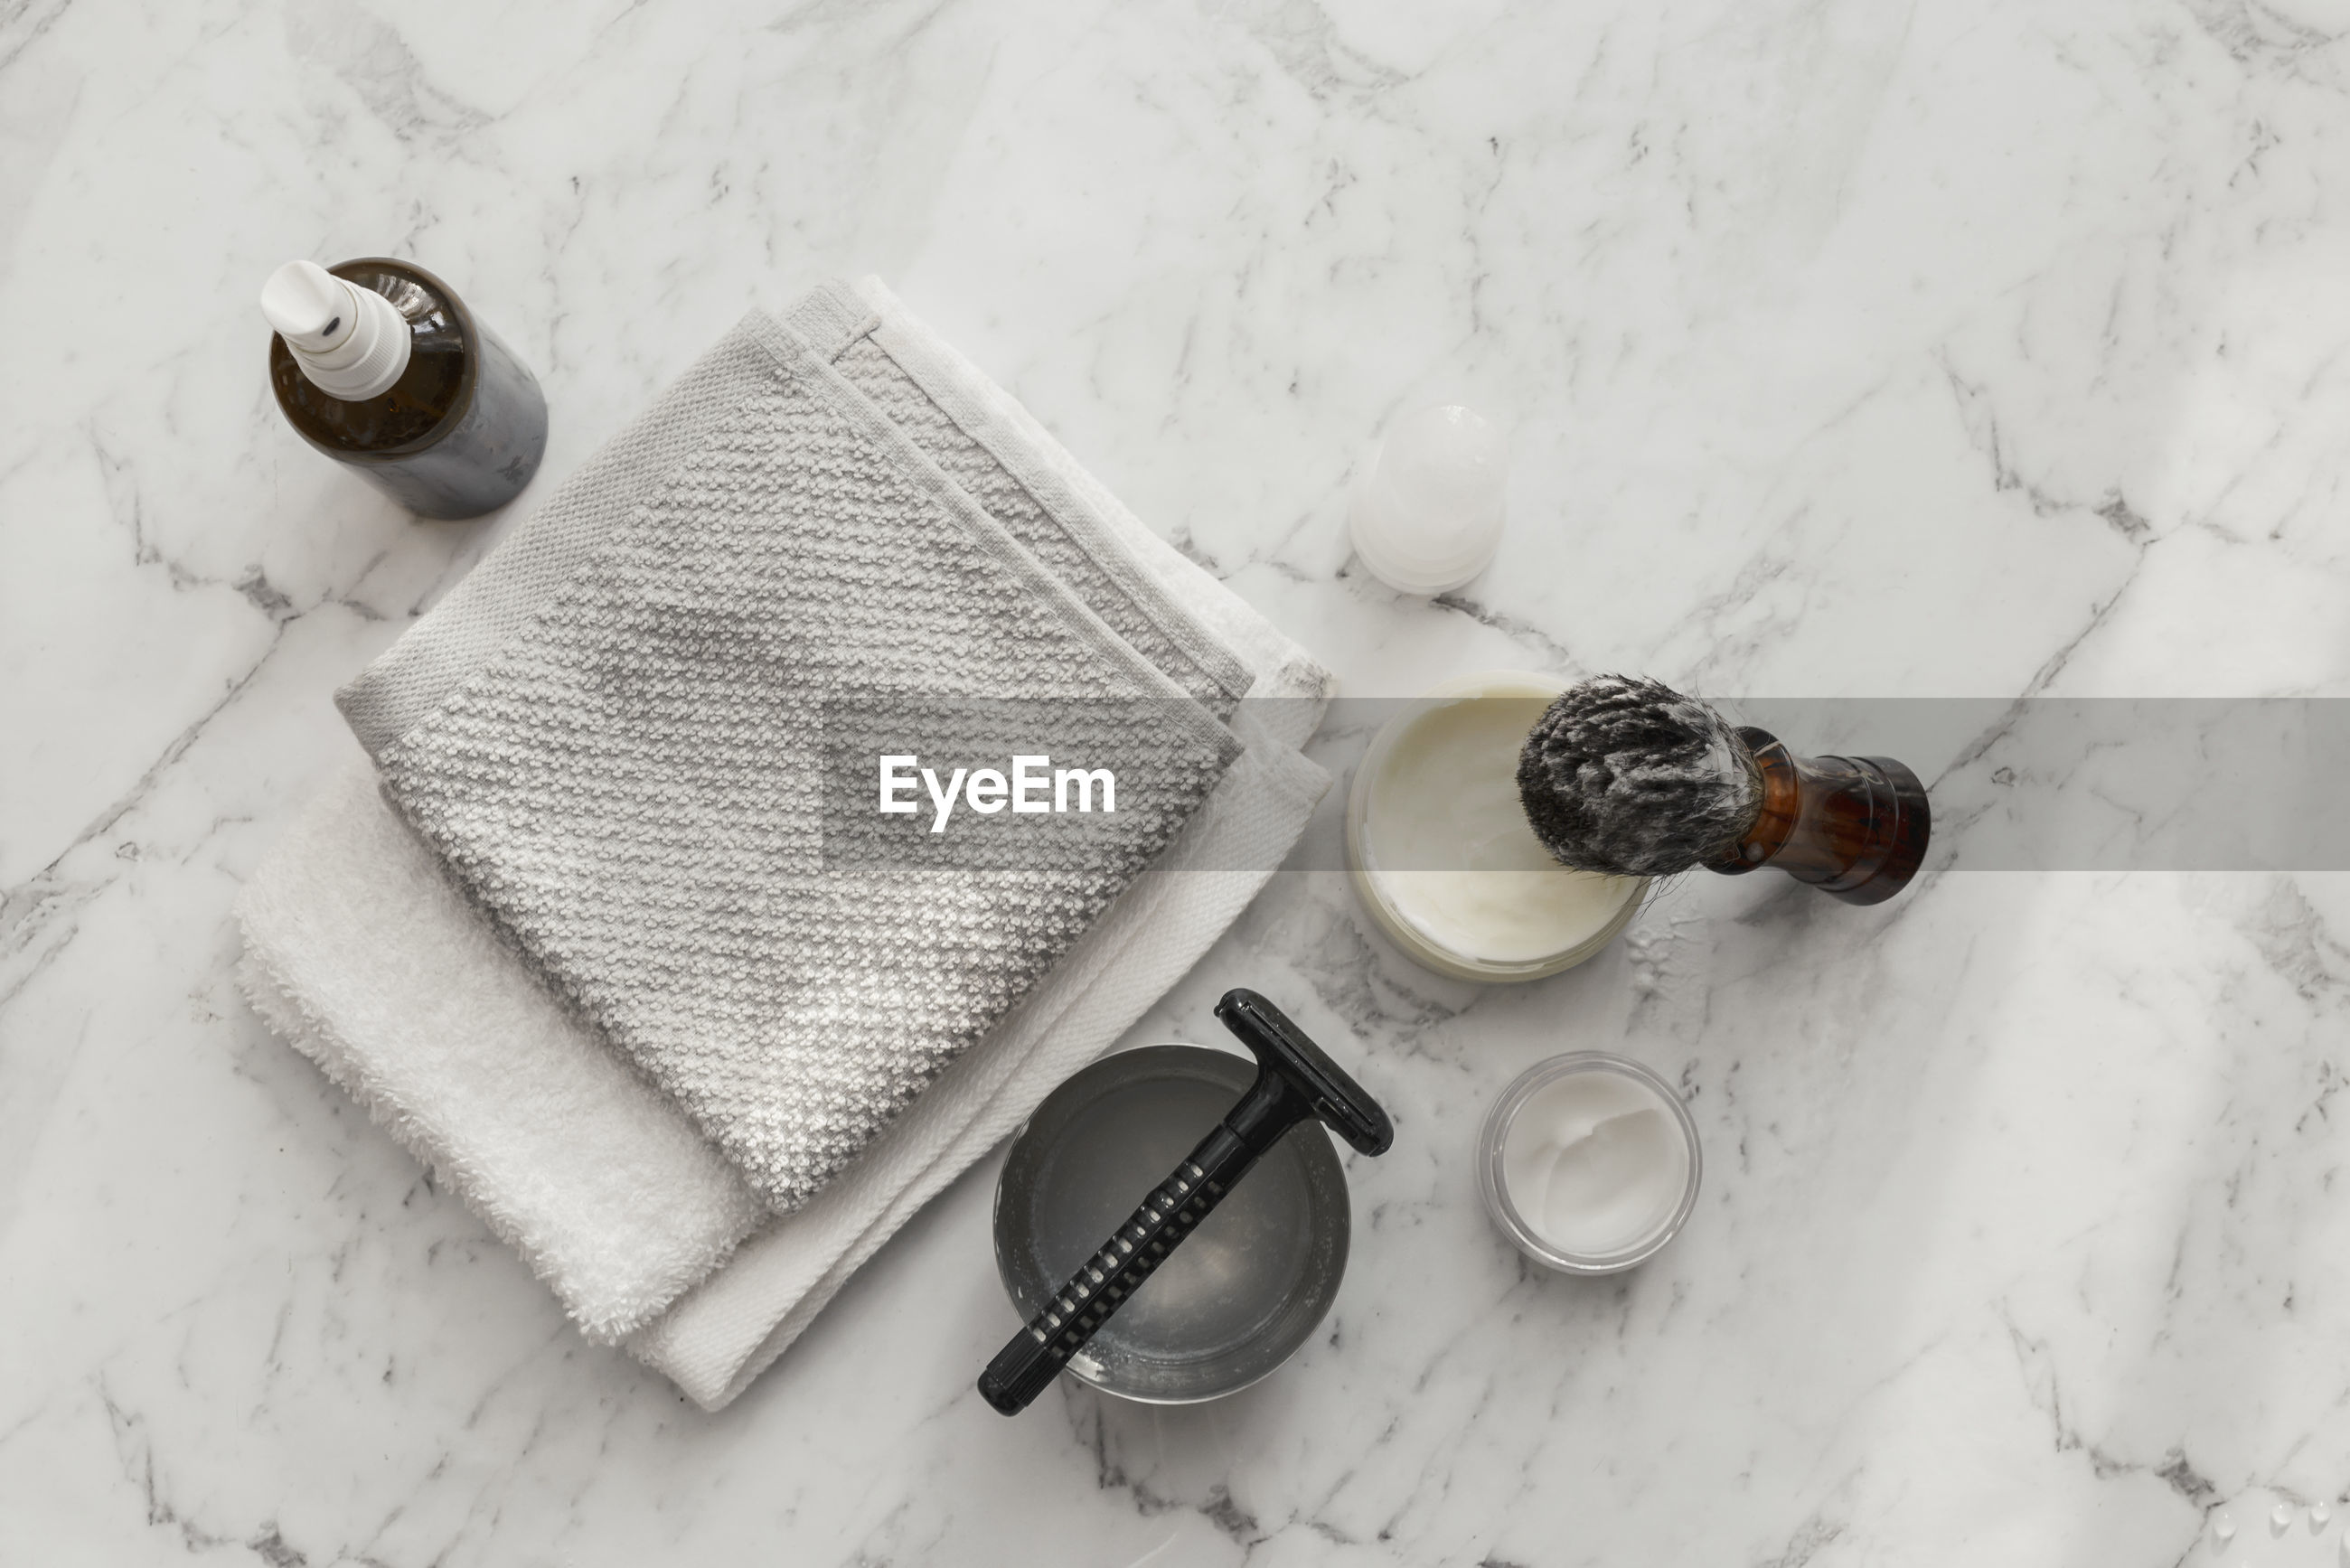 High angle view of shaving equipment on marble table